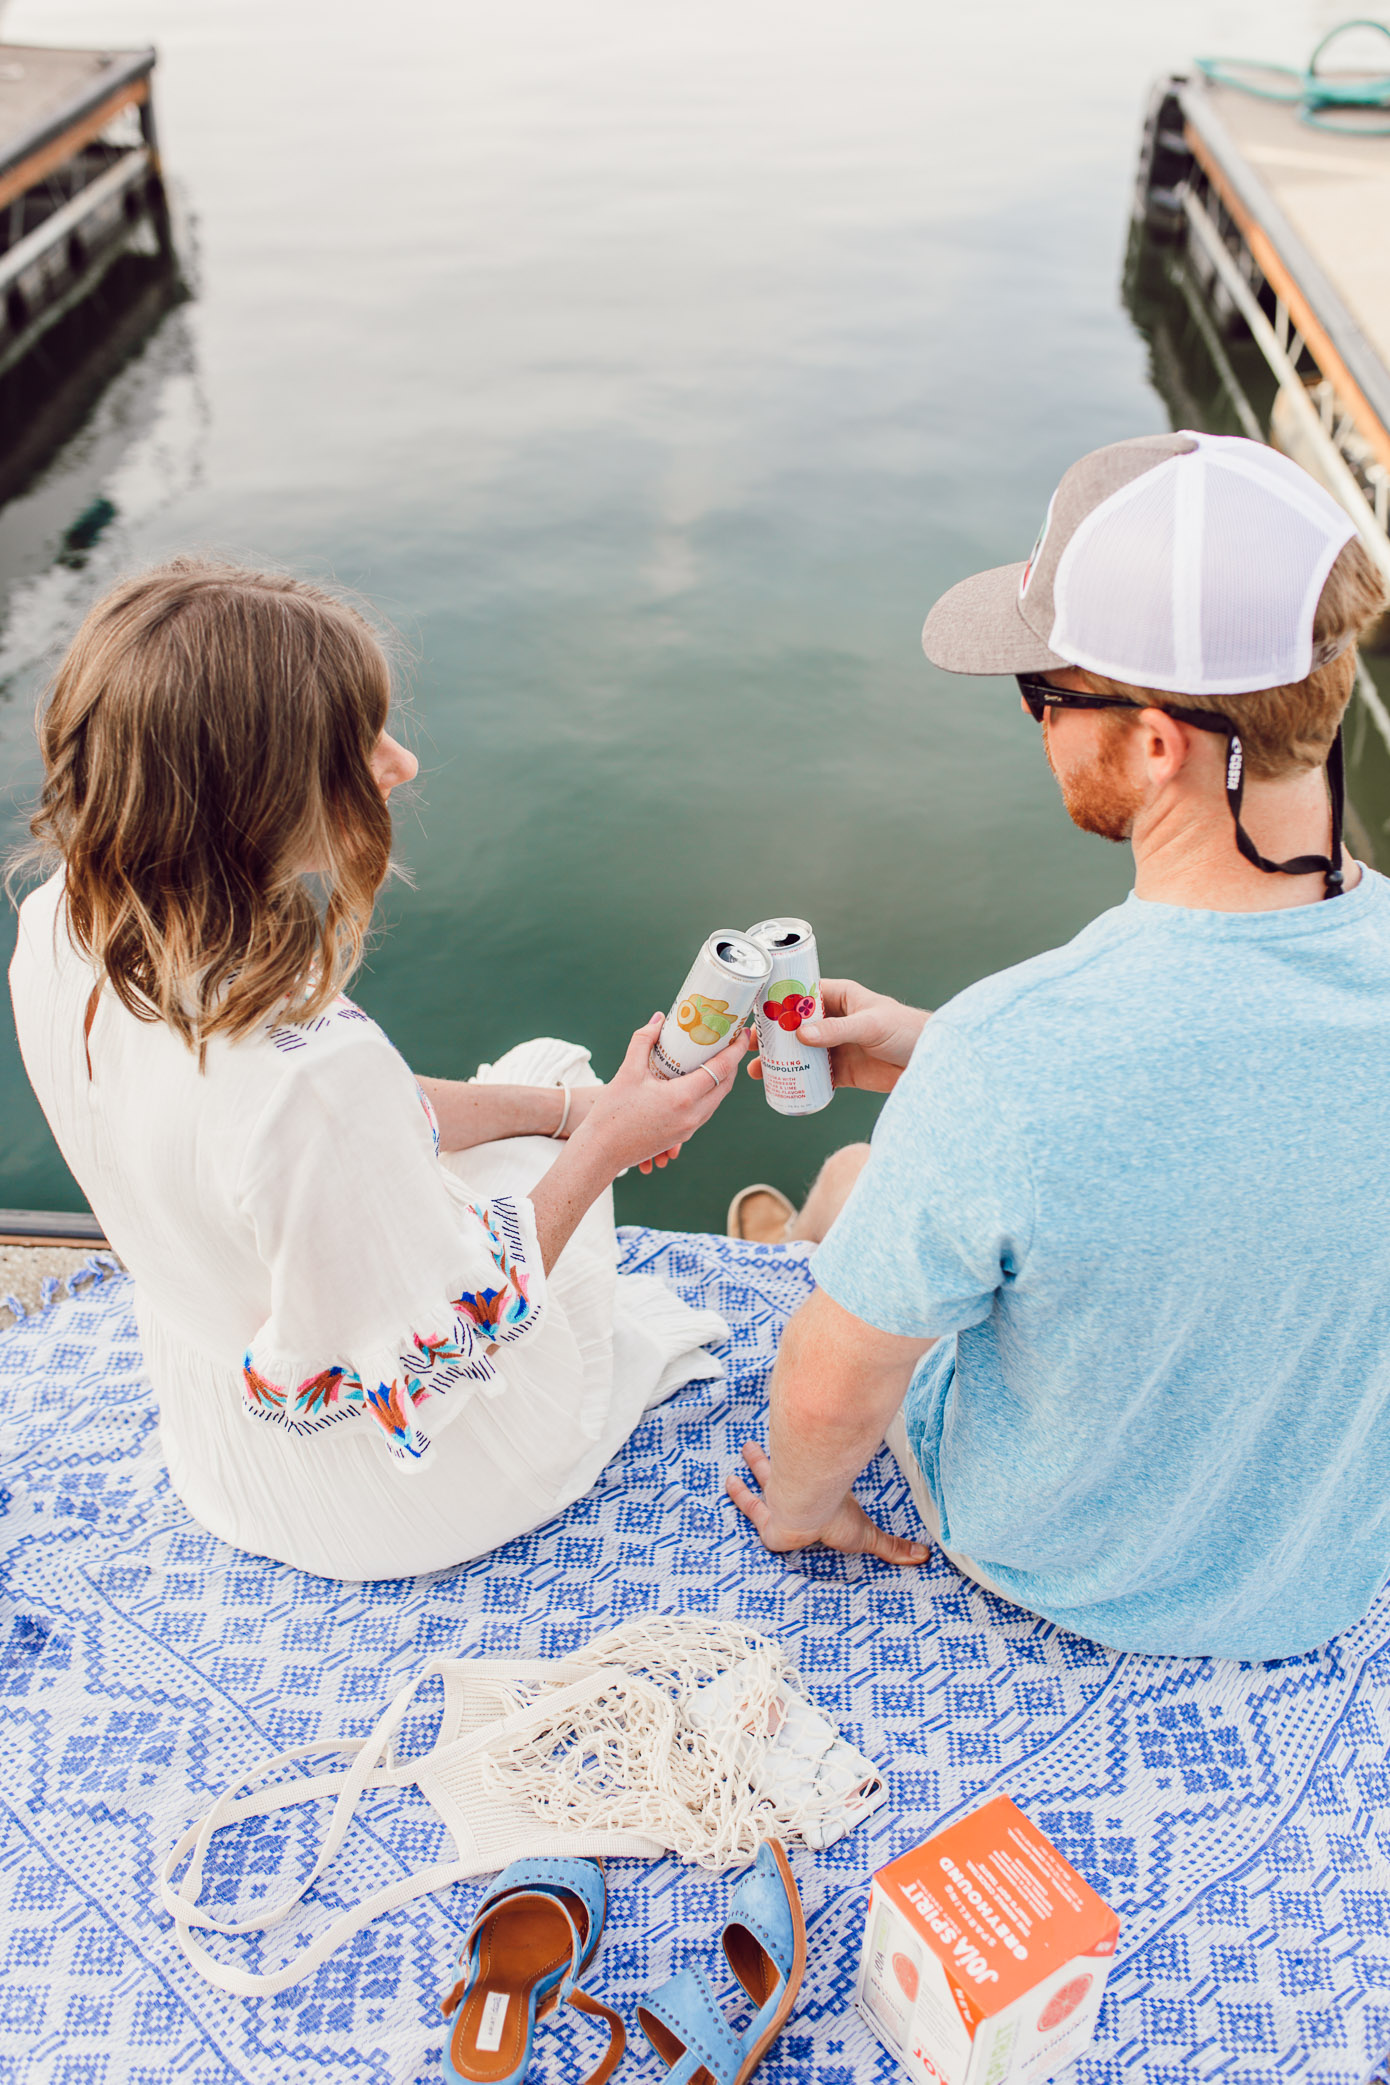 What to do this weekend with your significant other | Louella Reese